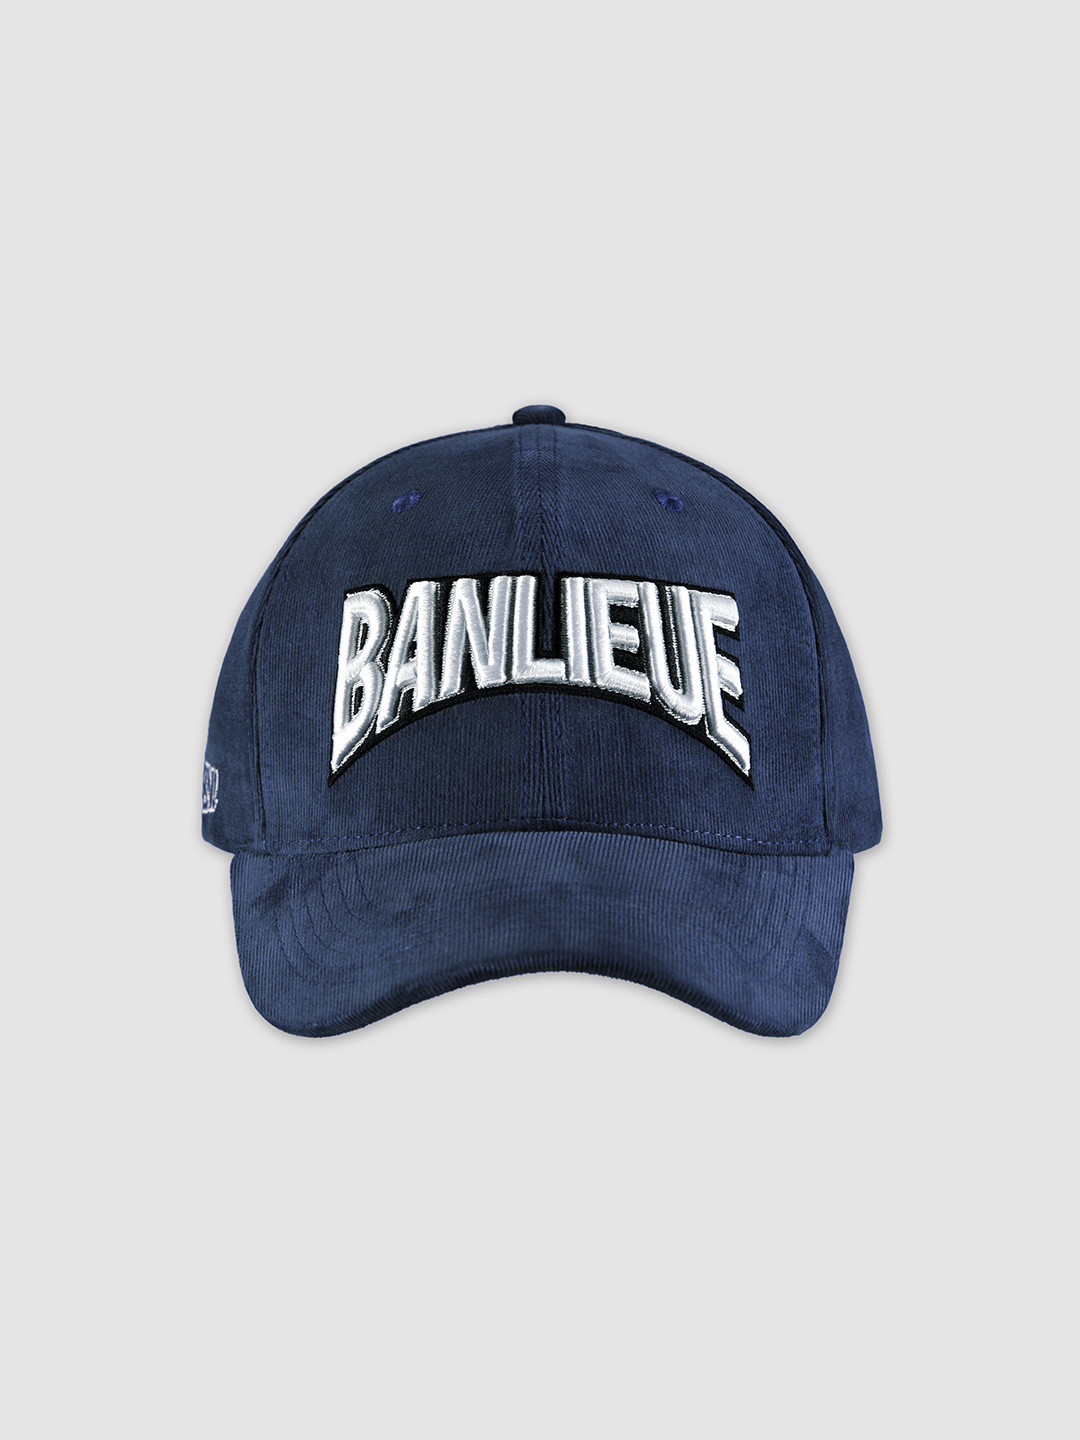 Champion Cap Navy